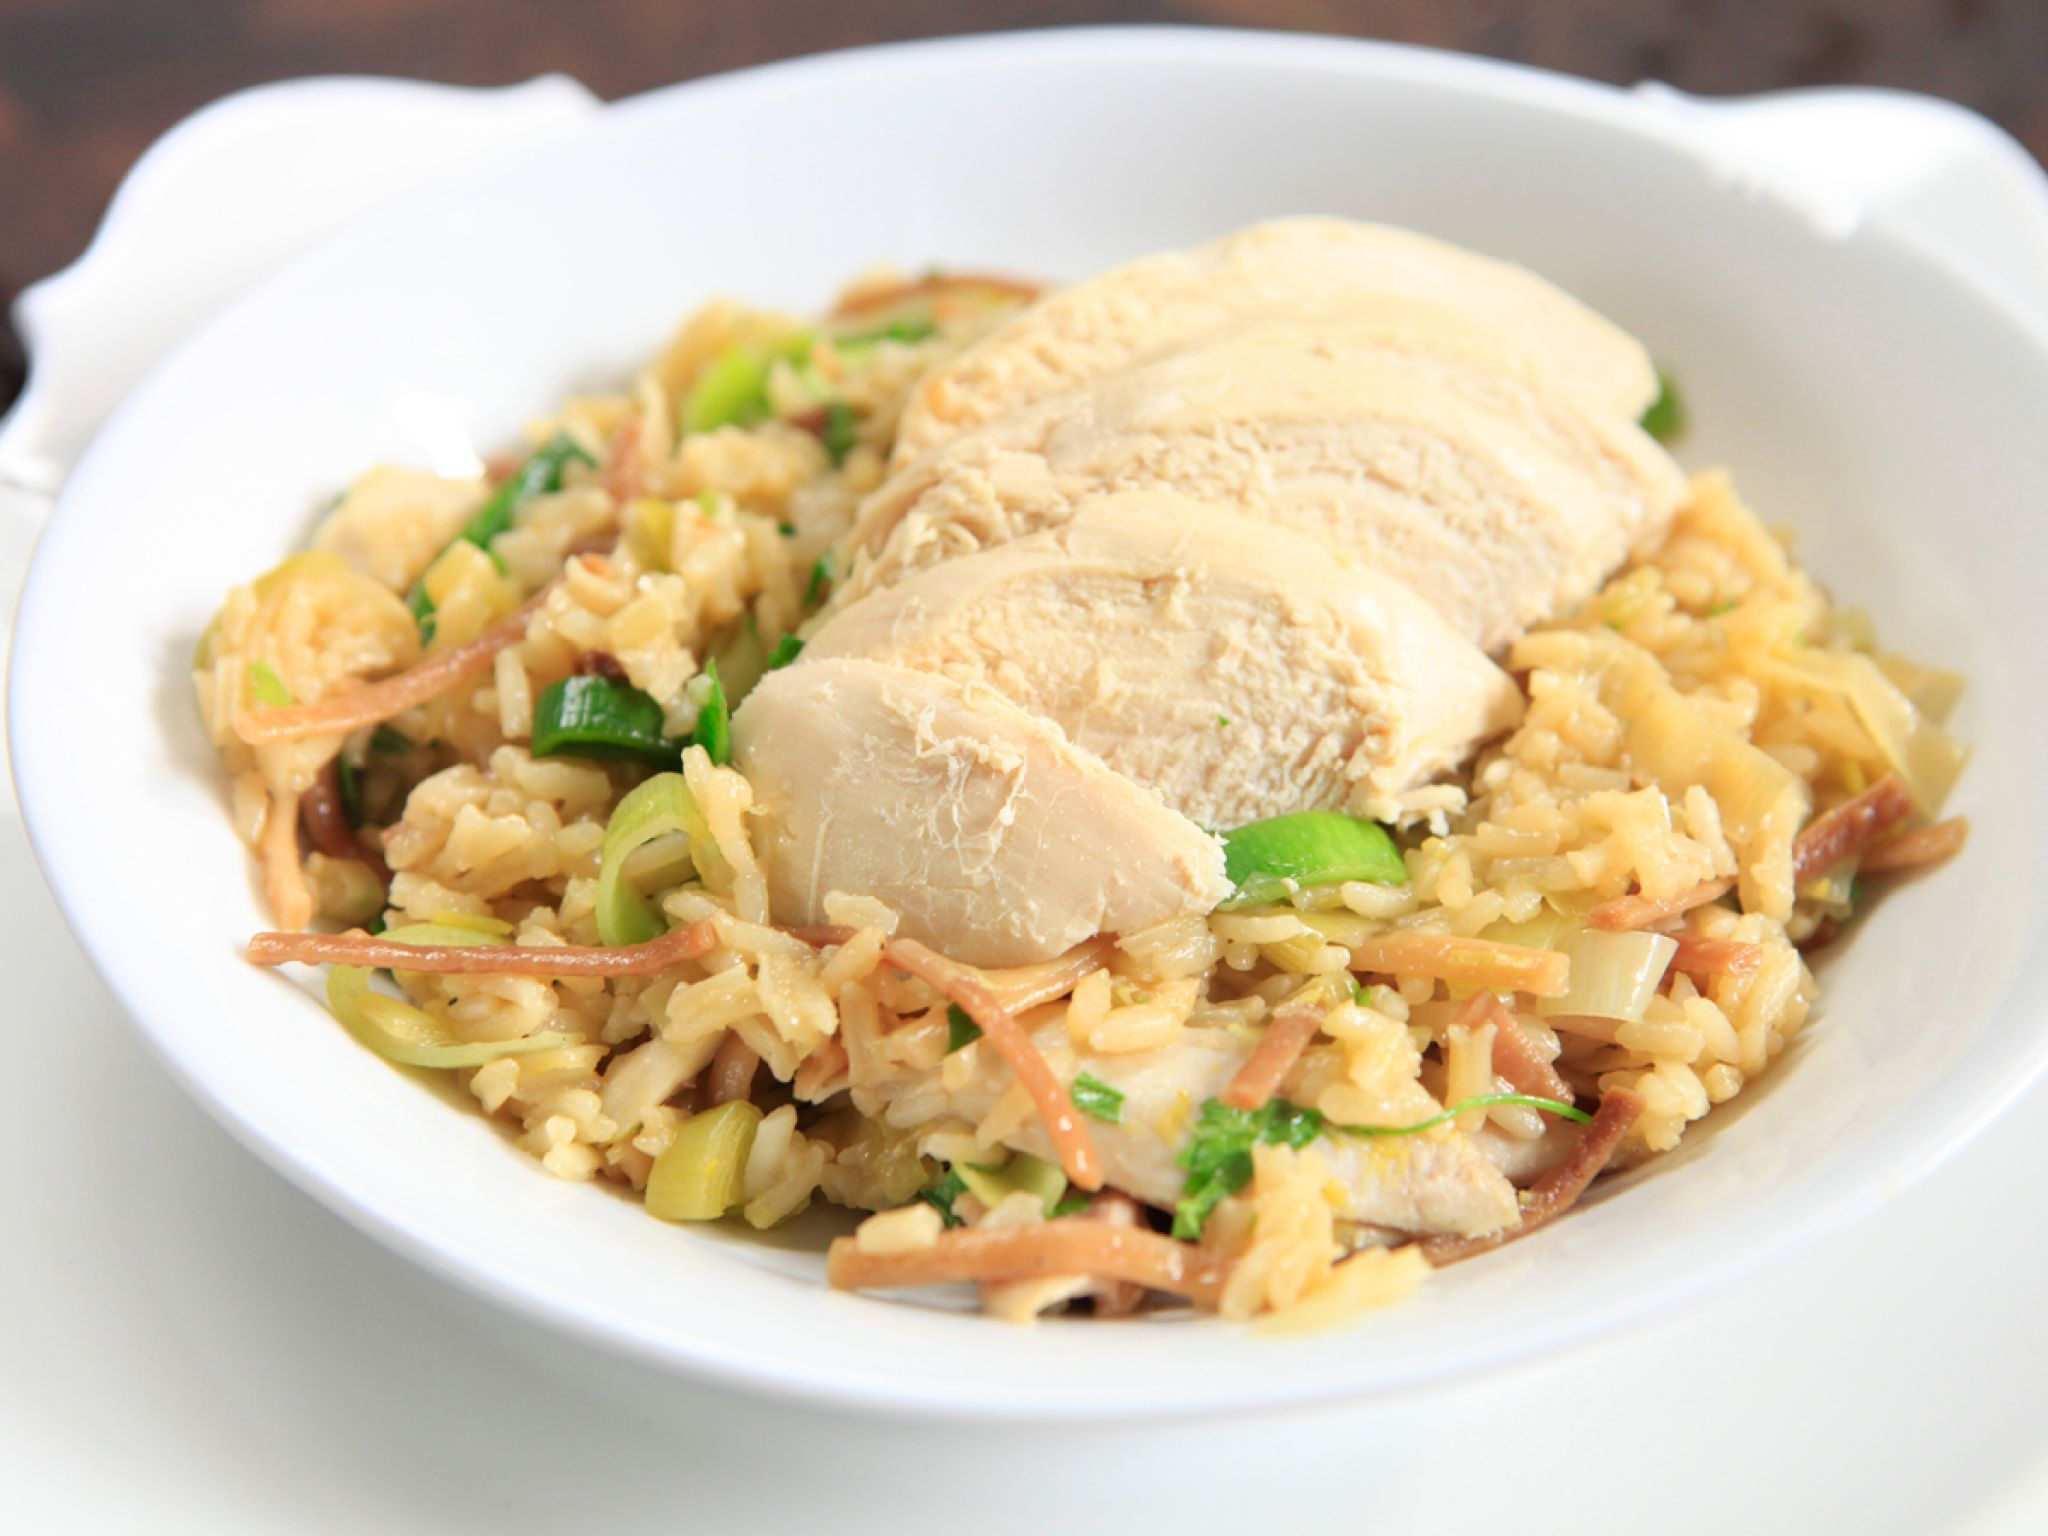 Lemon chicken and leek rice pilaf recept ris citronkyckling och lemon chicken and leek rice pilaf recipe from rachael ray via food network delicious forumfinder Images